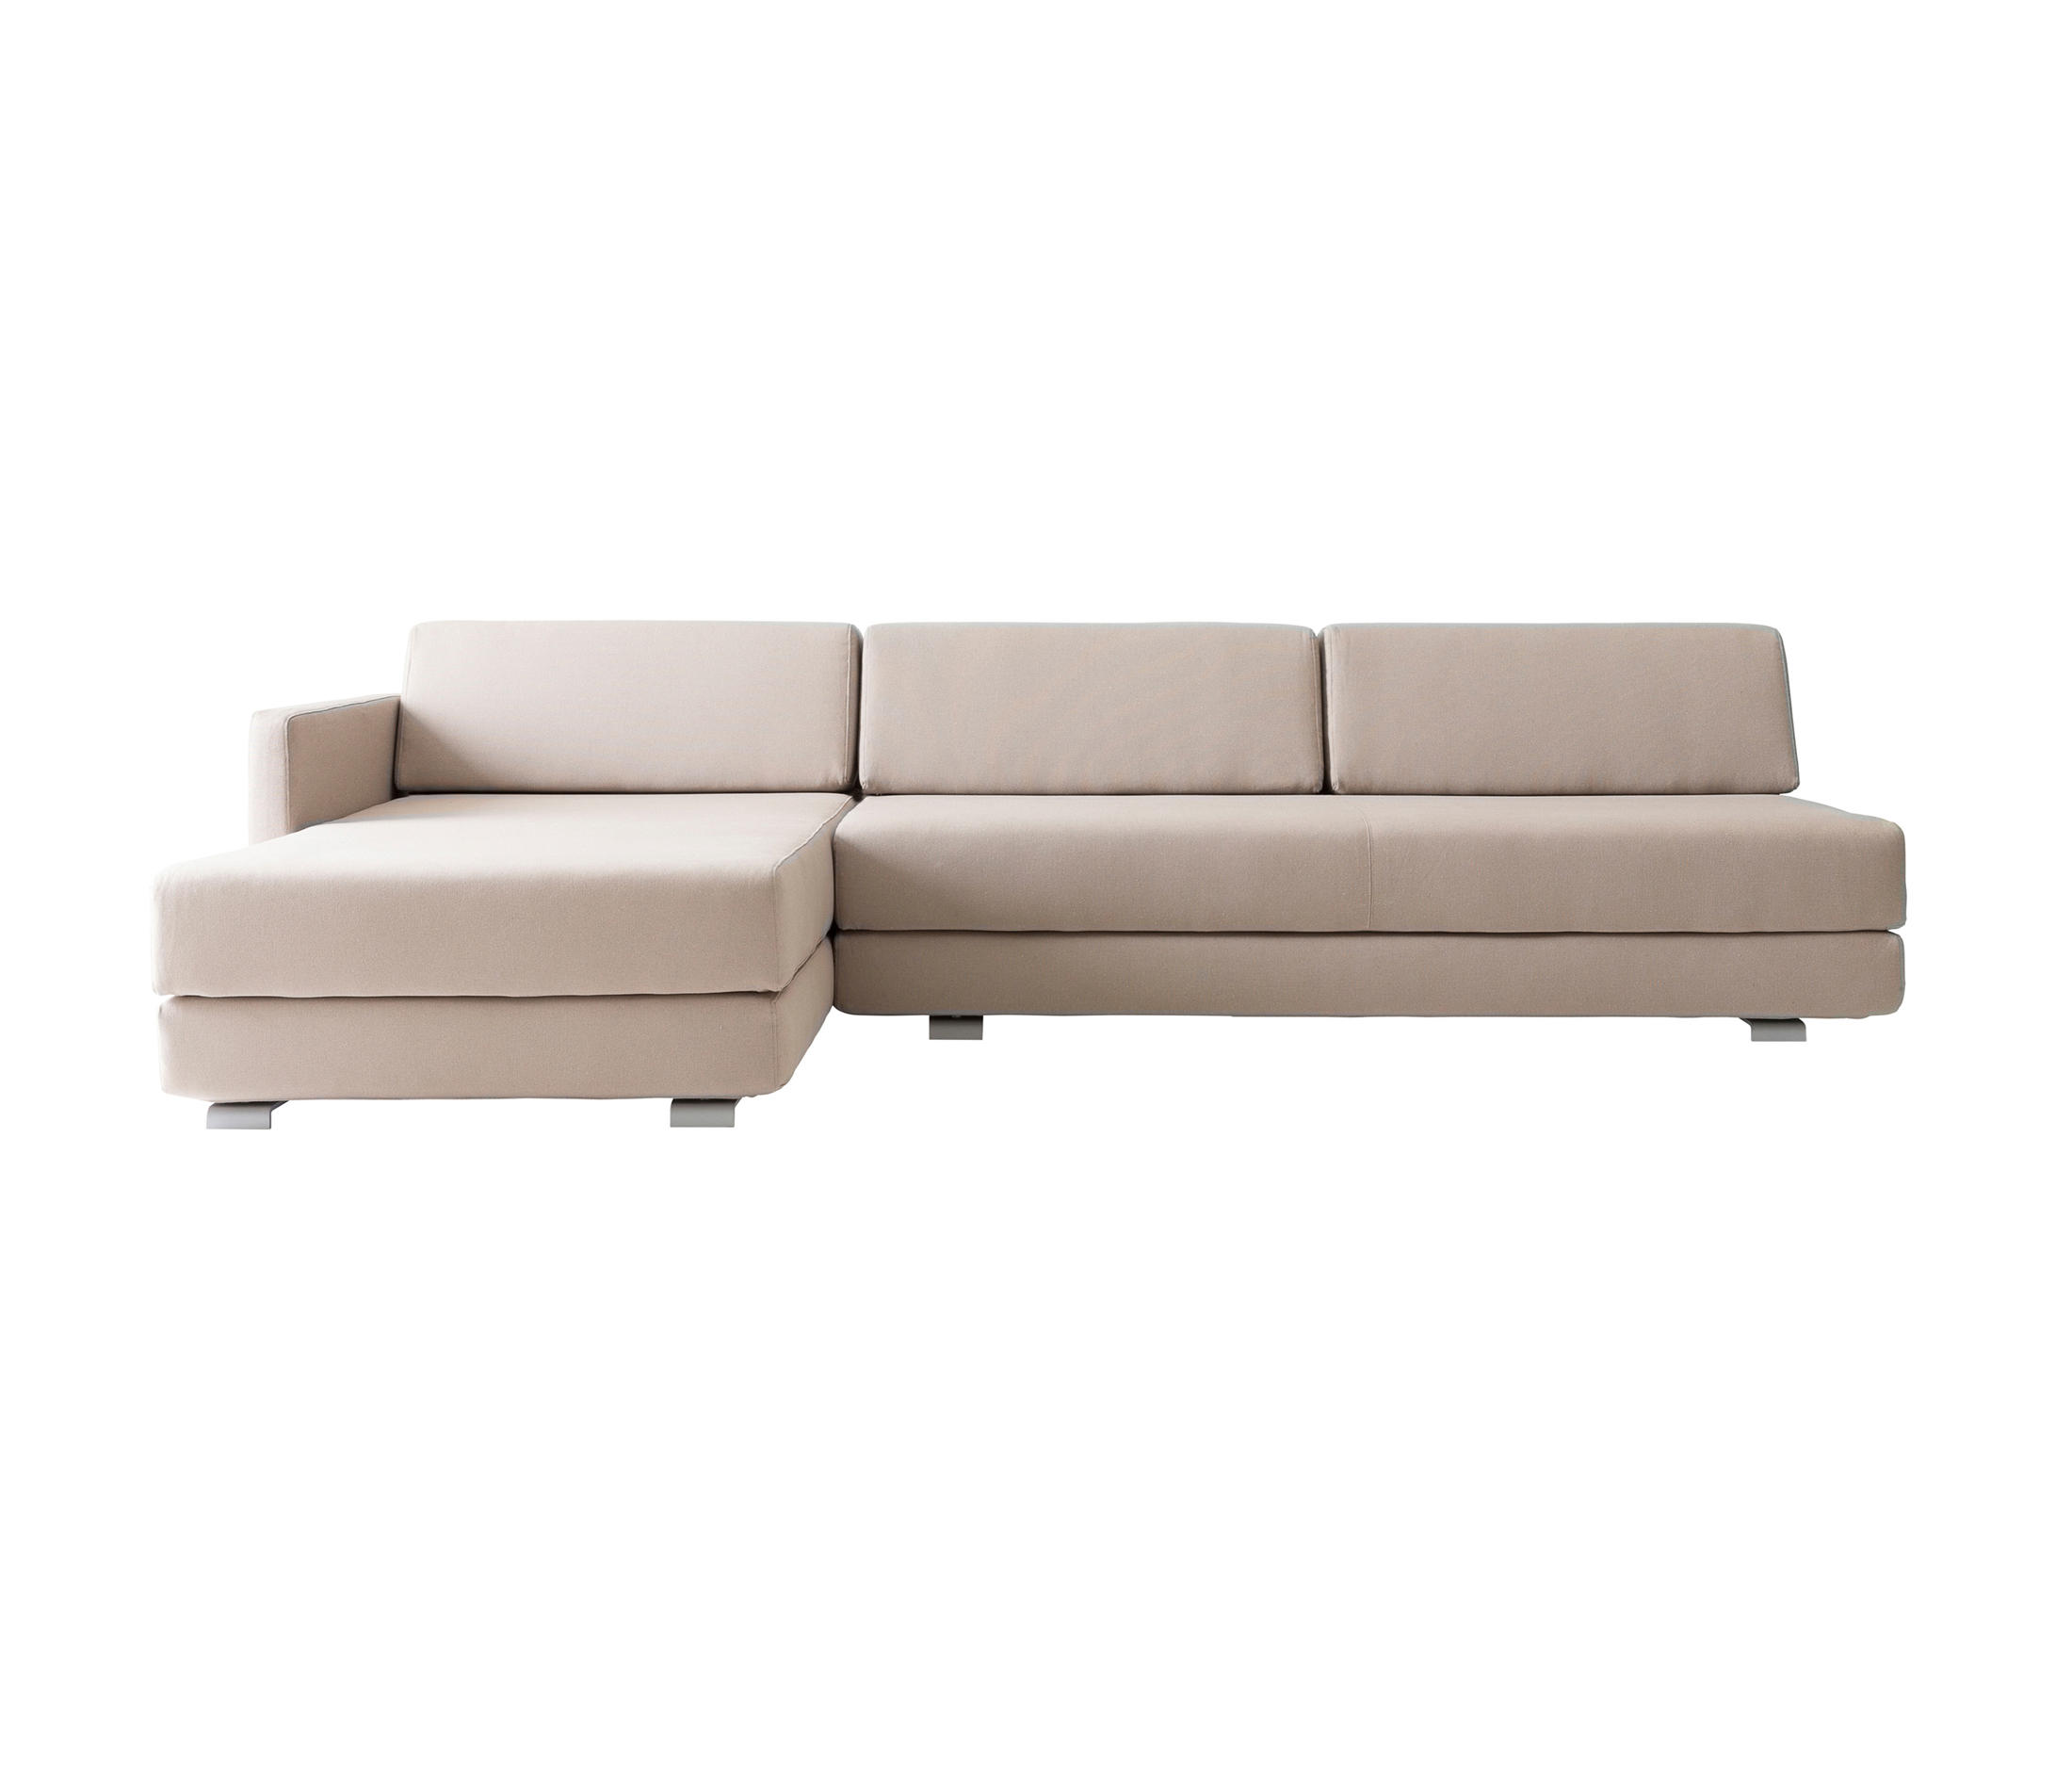 Lounge sofa by Softline A/S | Sofas